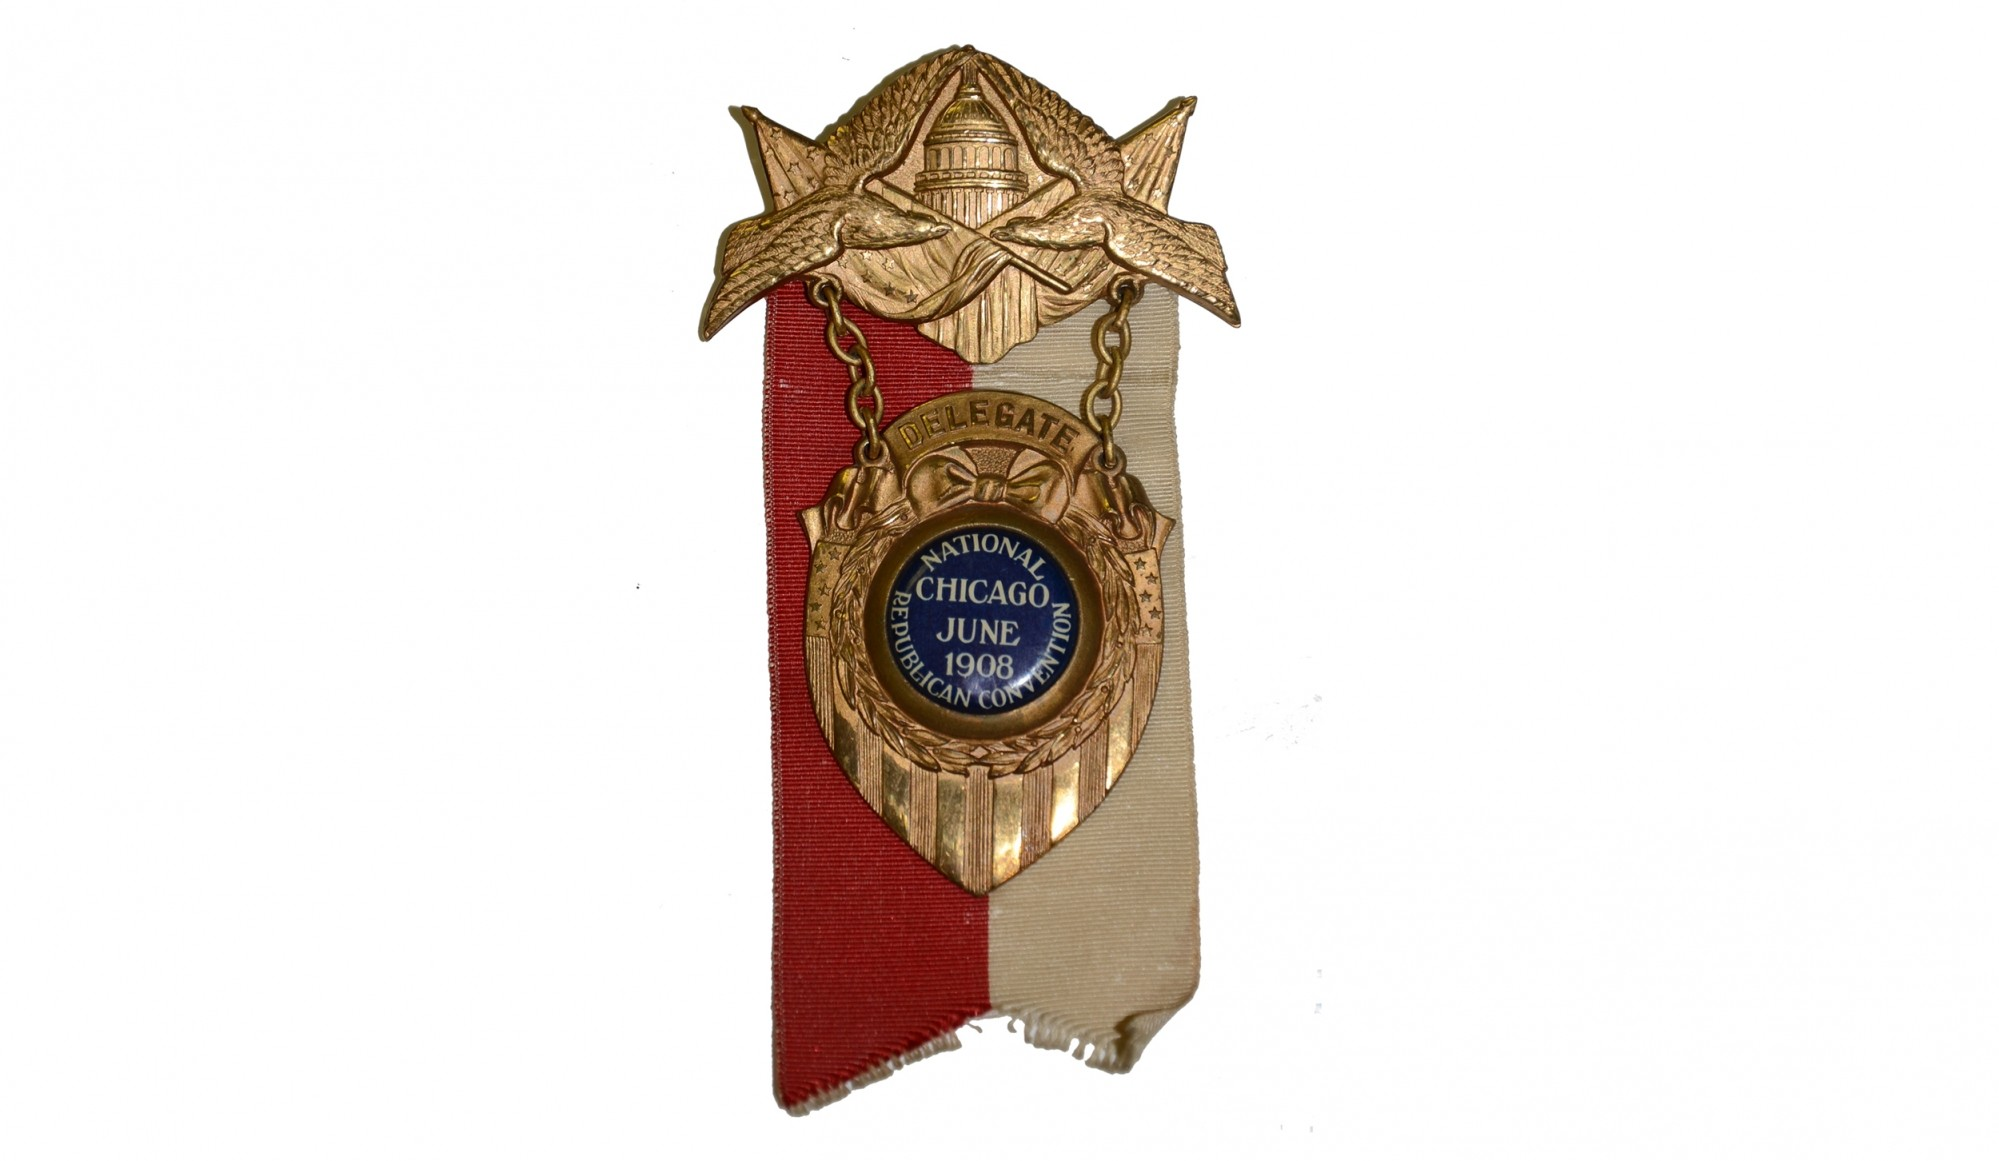 1908 REPUBLICAN NATIONAL CONVENTION DELEGATE BADGE